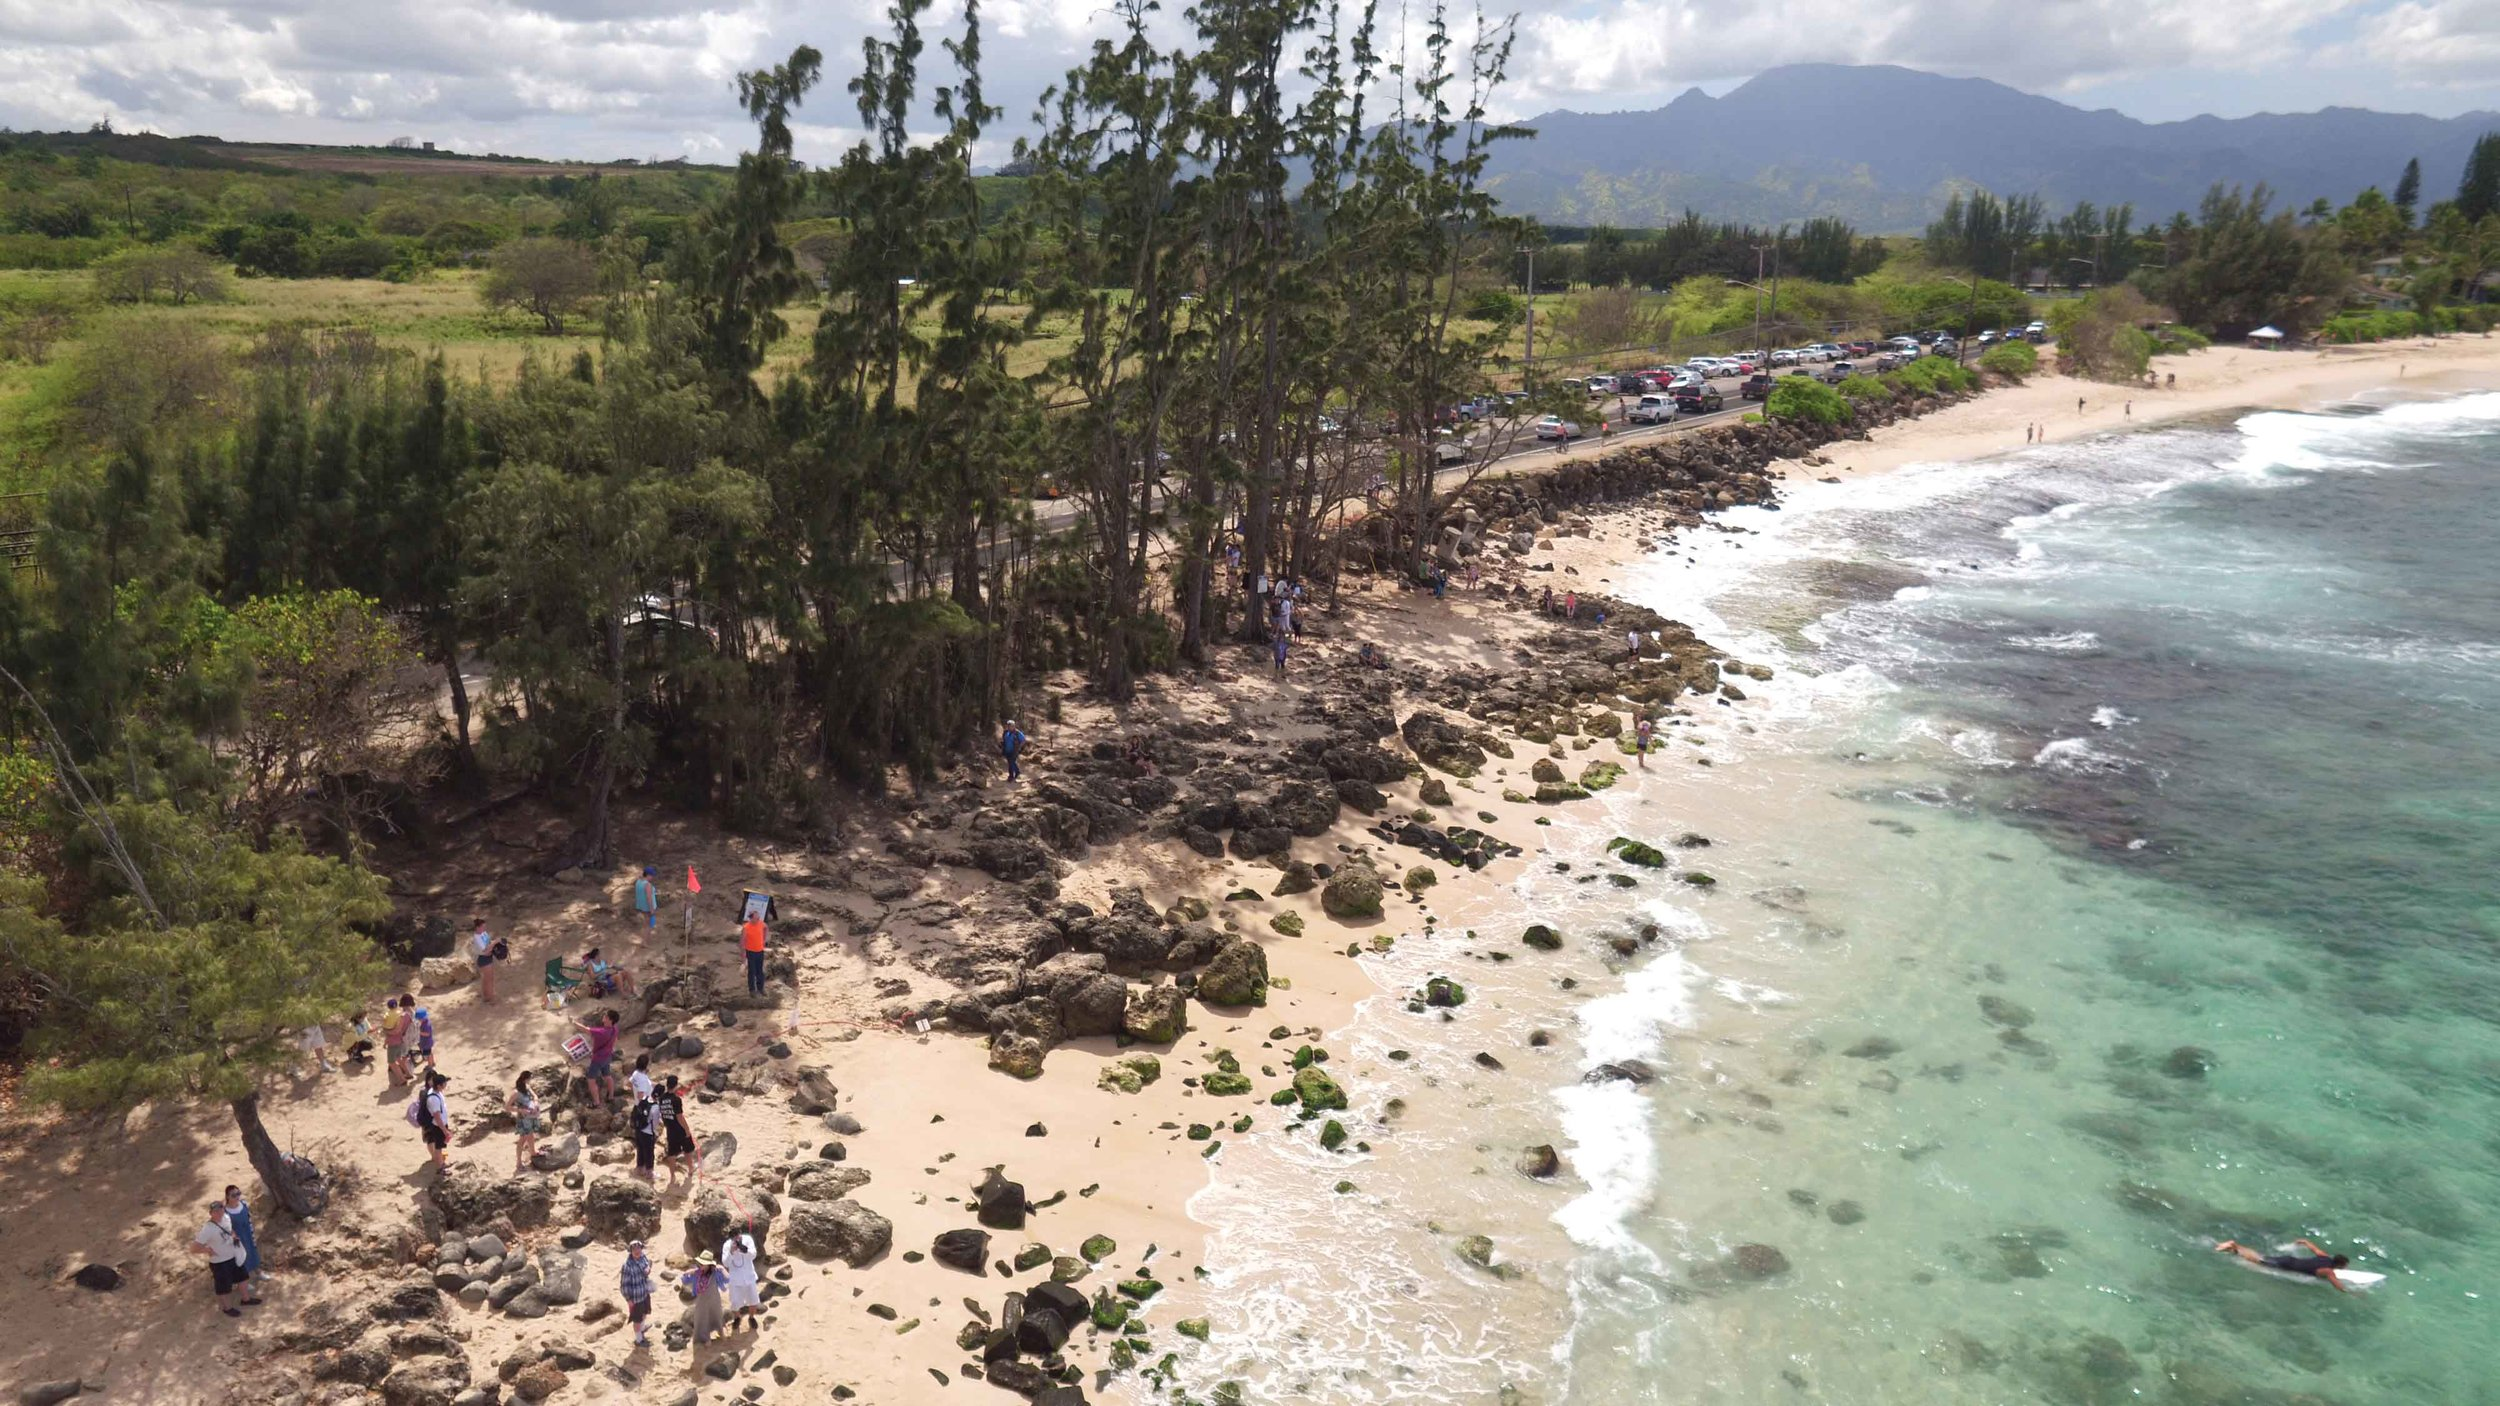 An aerial view of Laniakea Beach on the North Shore of Oahu, Hawaii, shows how people stopping to watch a basking turtle contributes to traffic on the adjacent two-lane highway. © PAUL JAVIER